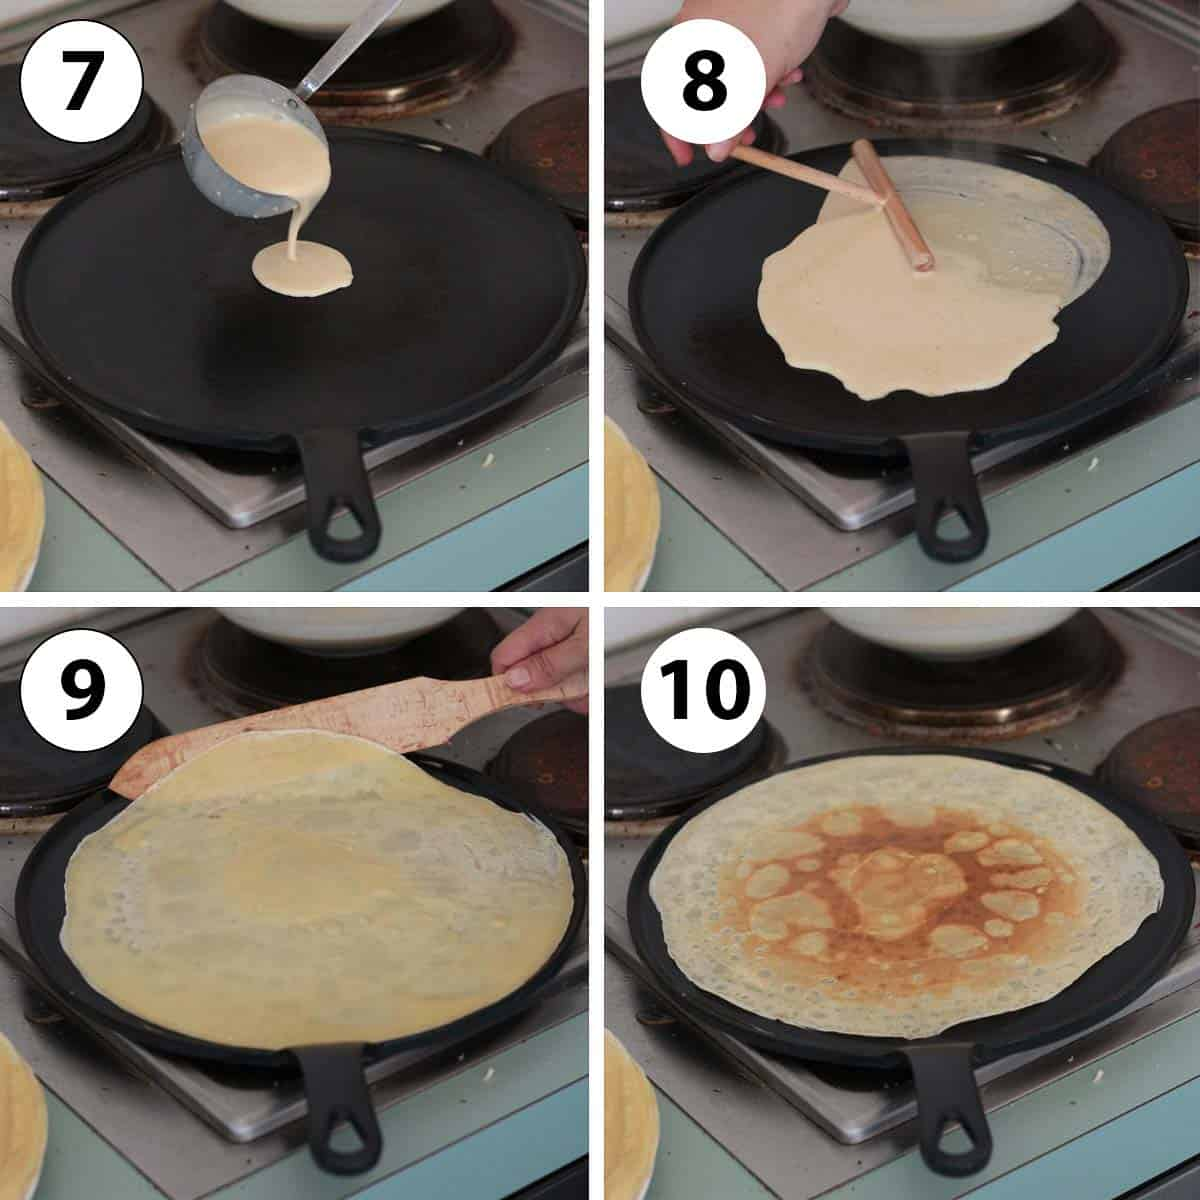 Process Shots: cooking the crepes on a crepe pan.